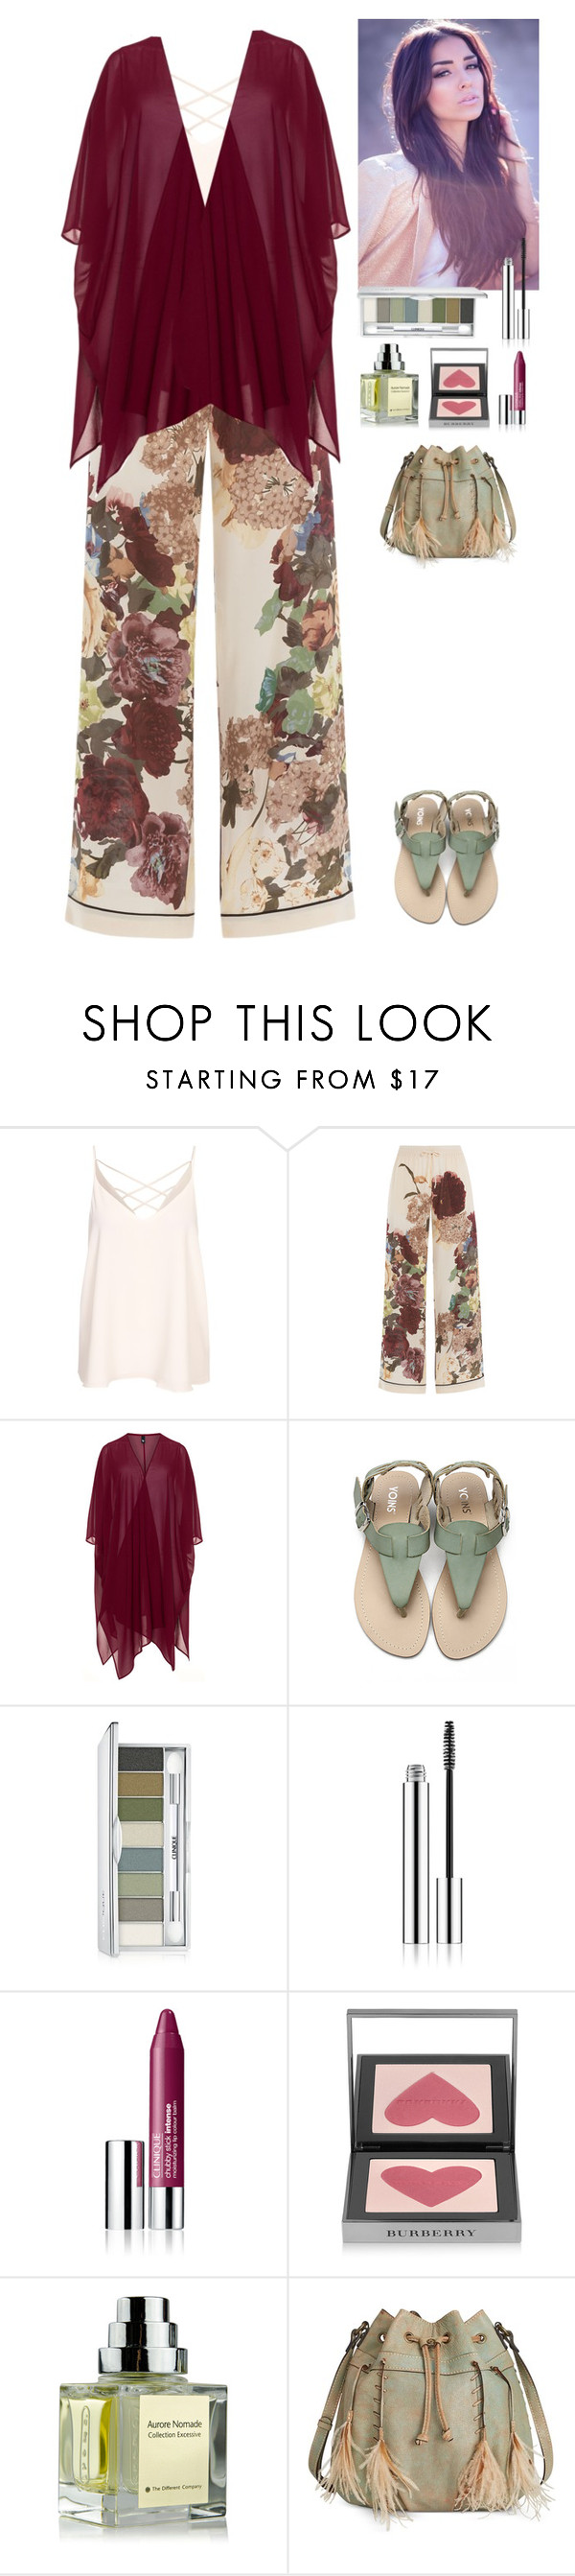 """""""Summer outfit (read the D)"""" by eliza-redkina ❤ liked on Polyvore featuring Valentino, Manon Baptiste, Clinique, Burberry, The Different Company, Patricia Nash, StreetStyle, outfit, like and look"""